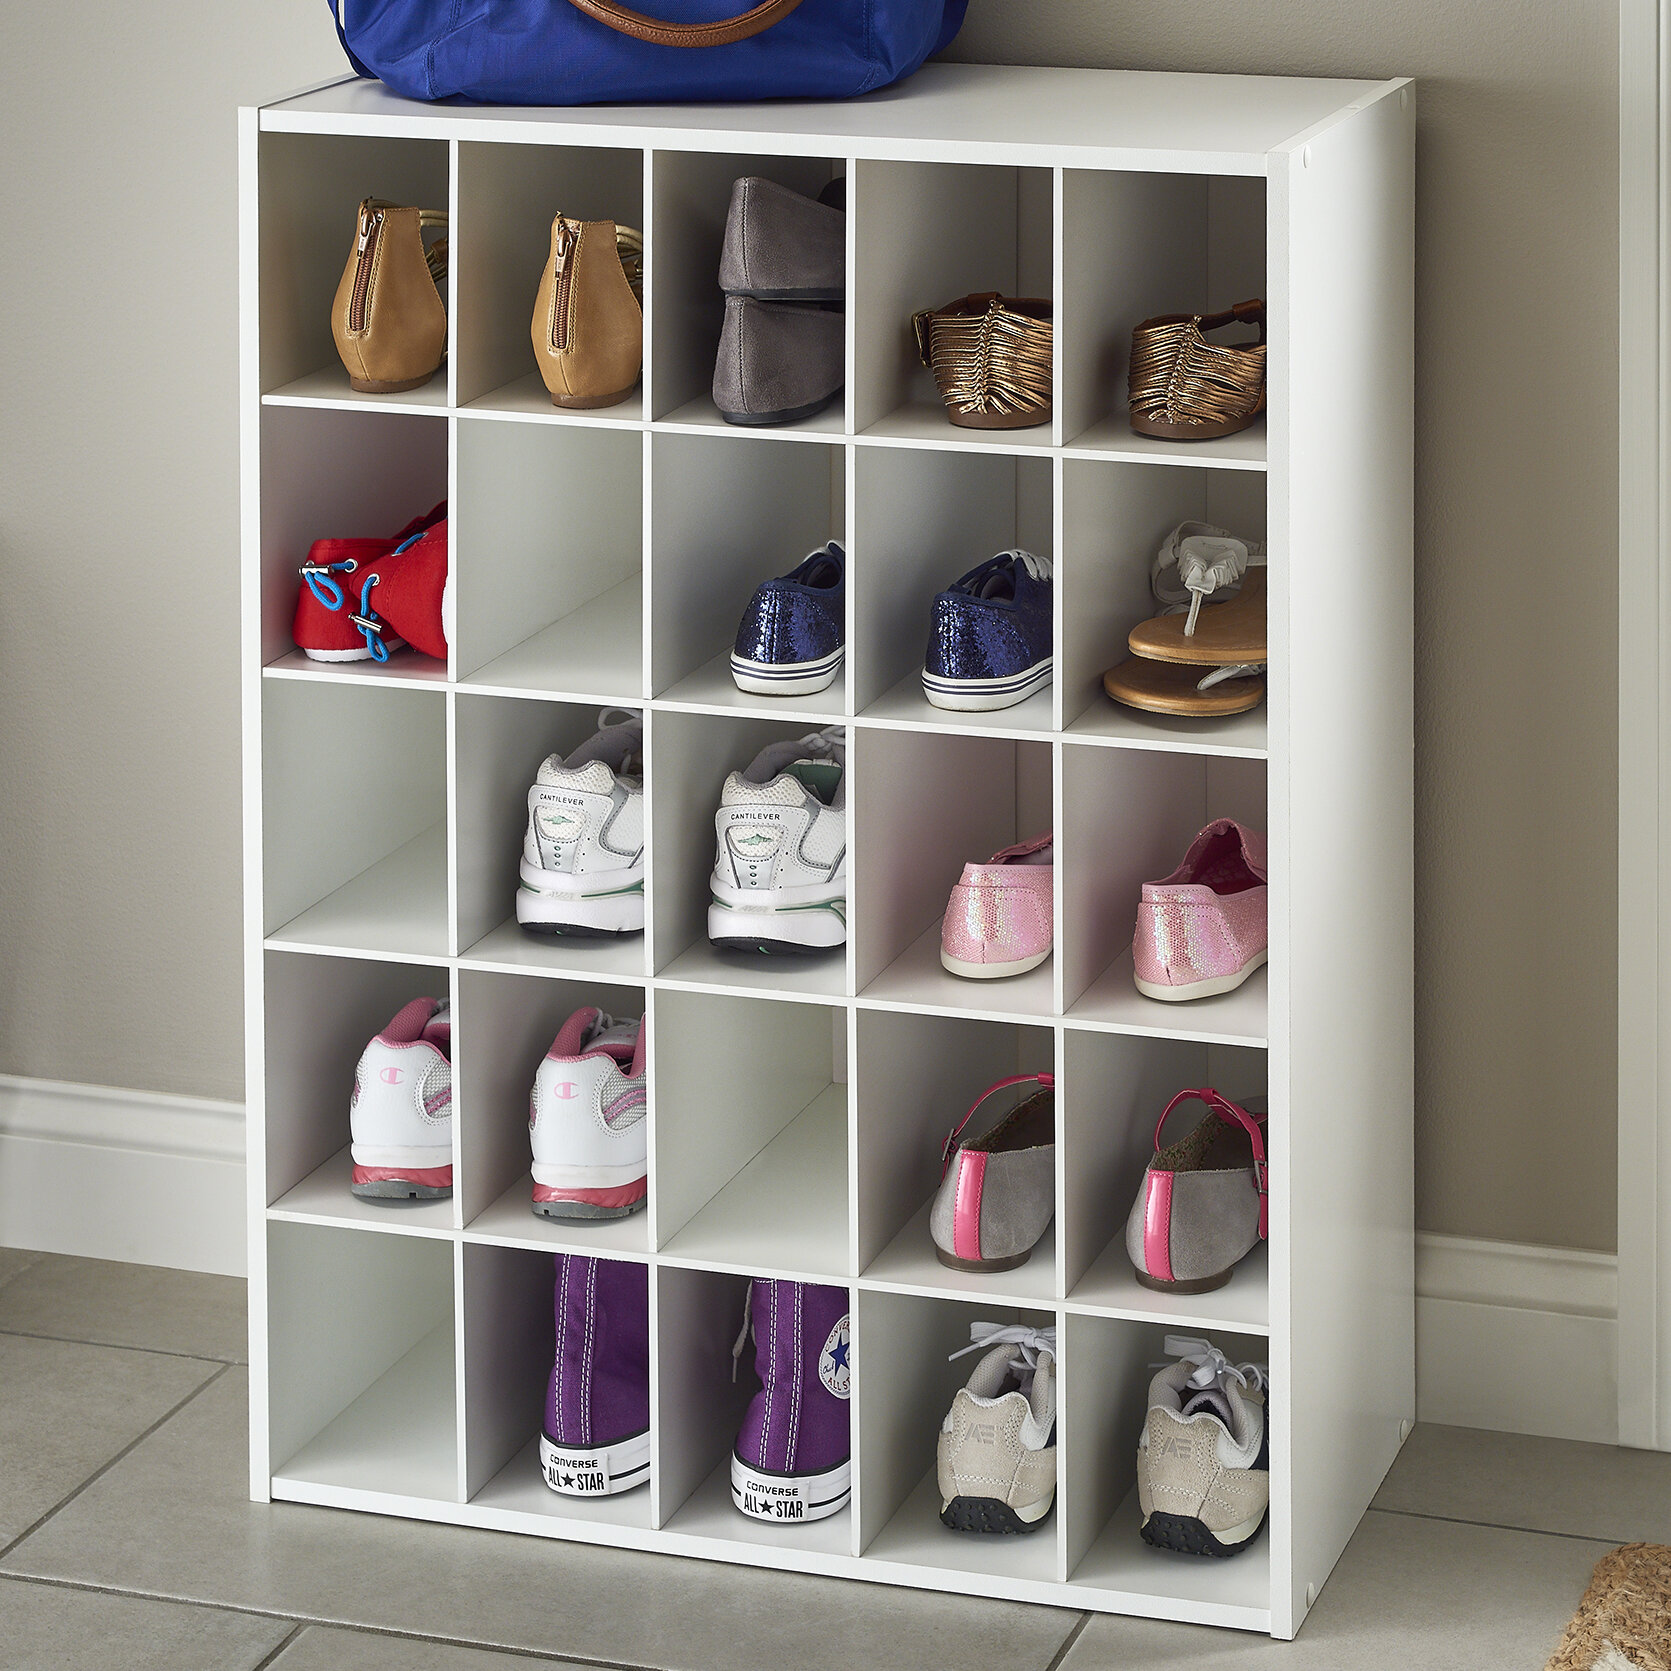 25 Pair Shoe Rack Outdoor Shoe Storage